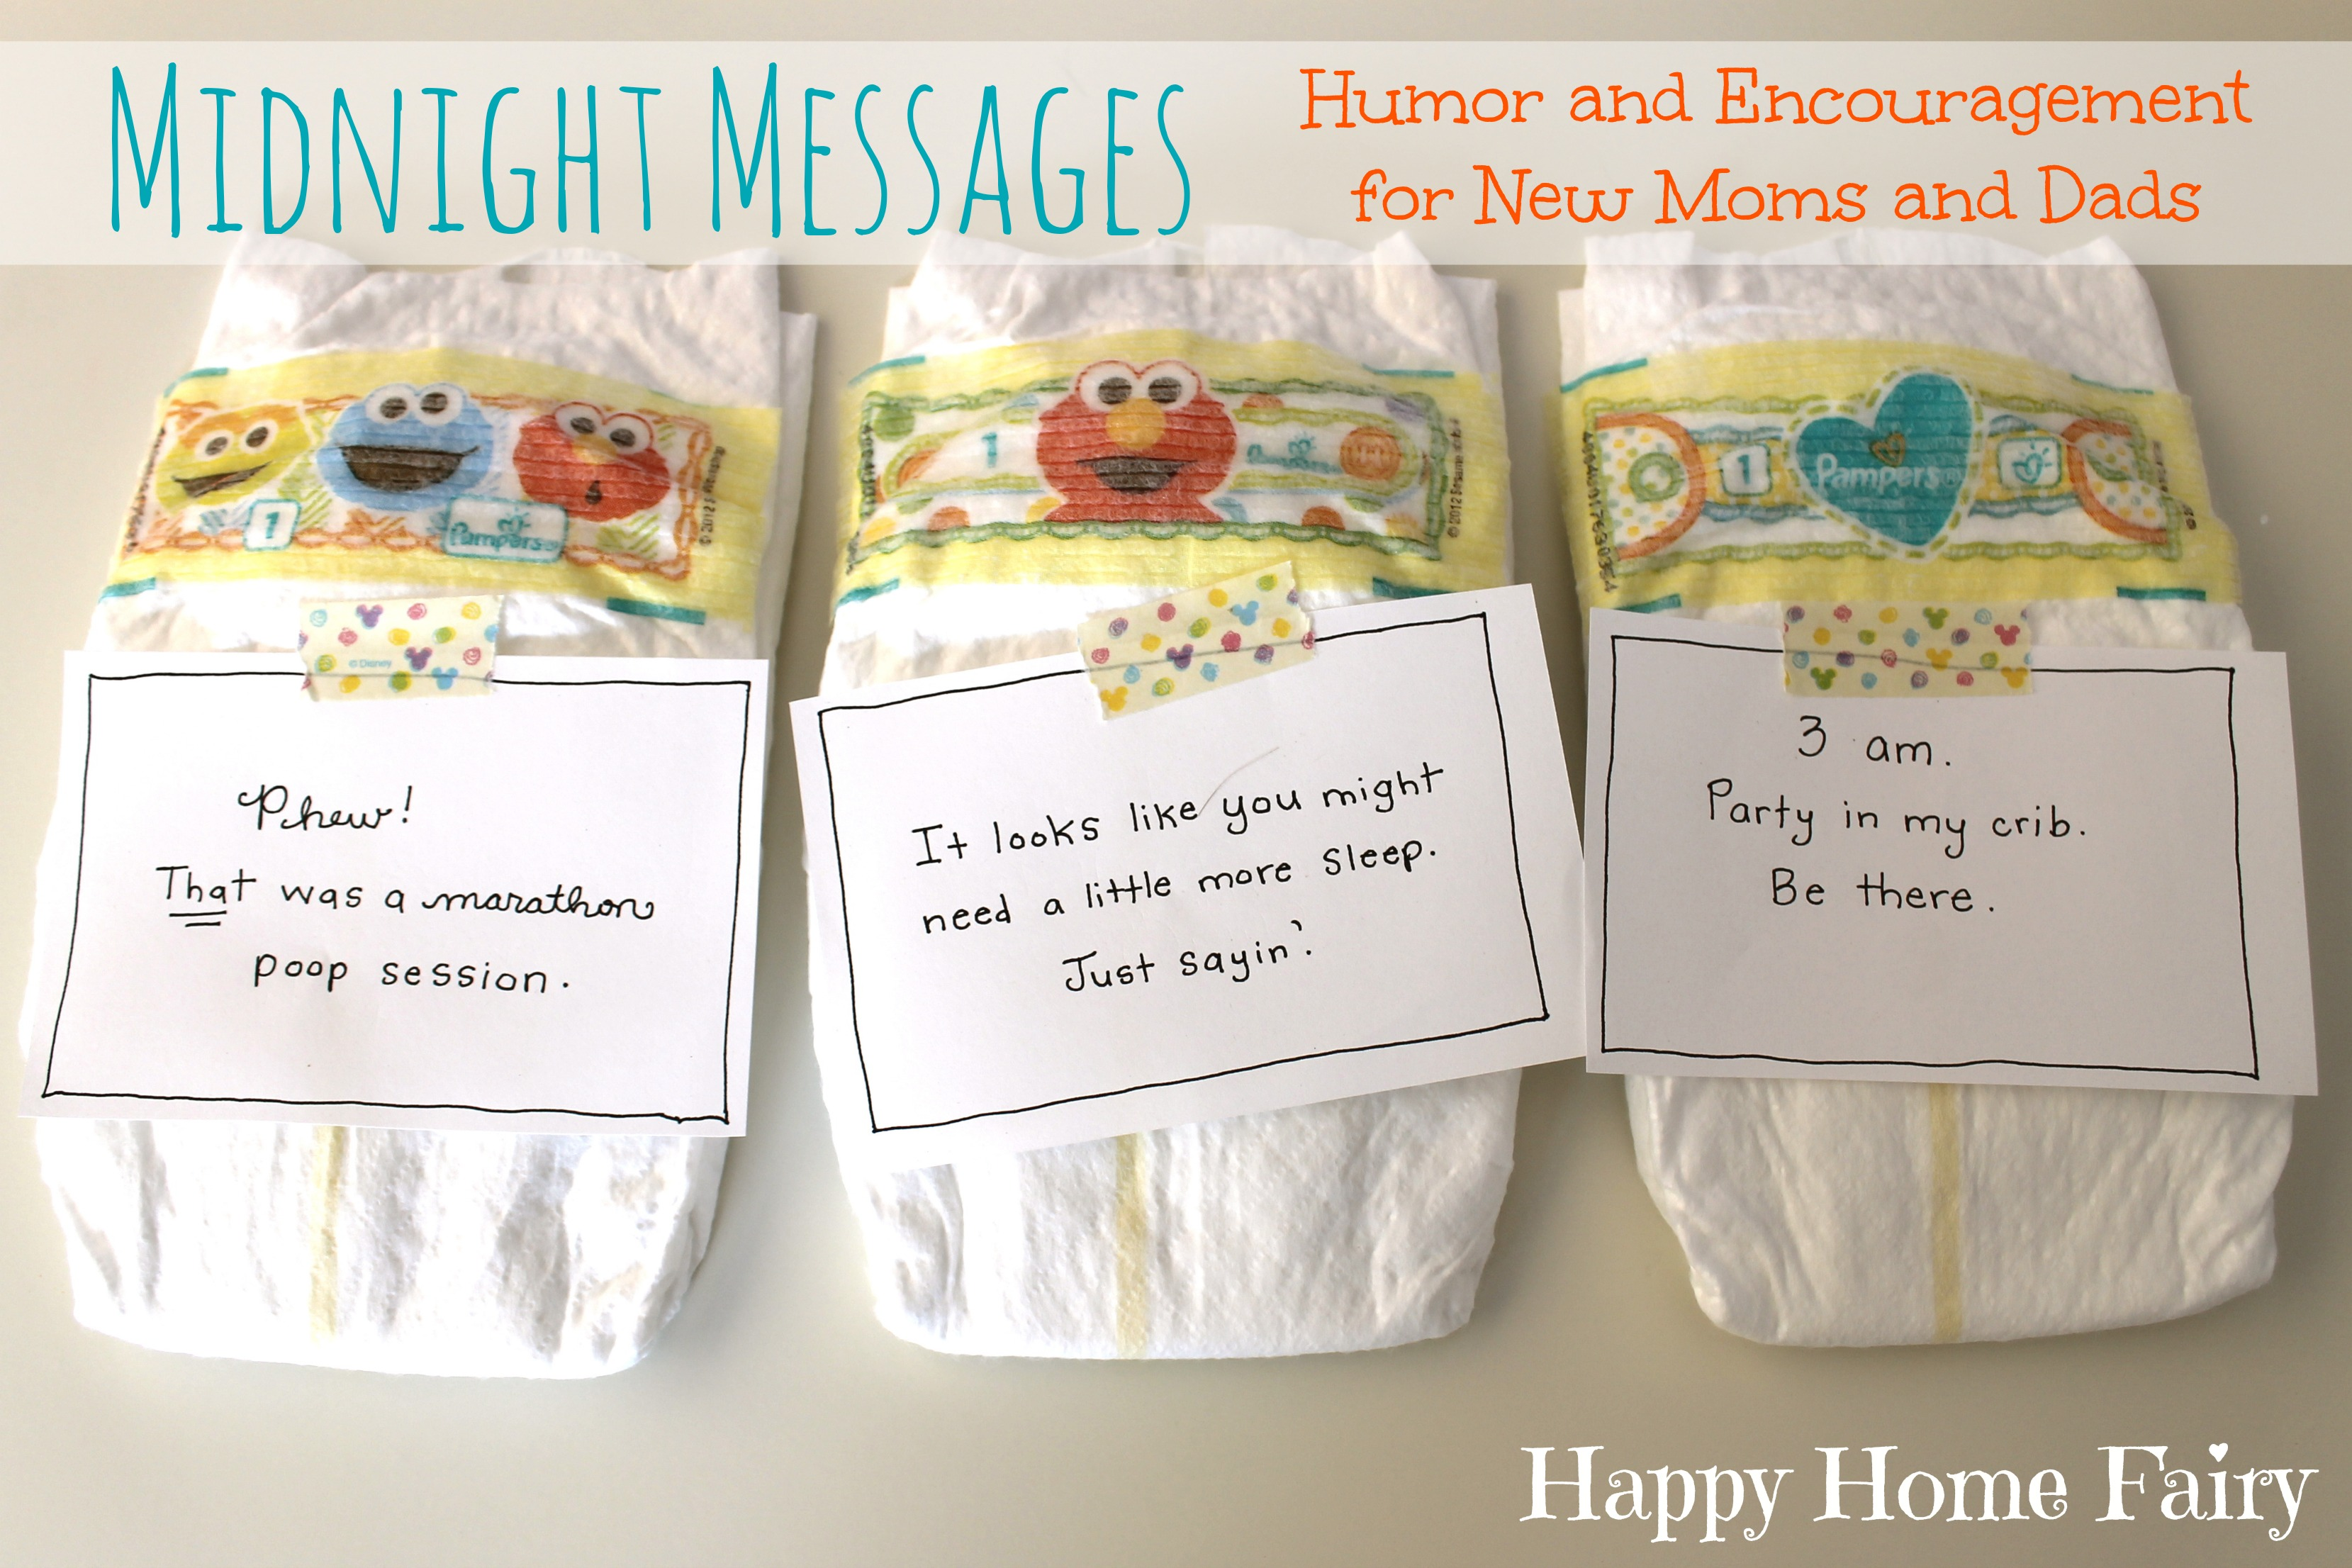 photograph regarding Late Night Diaper Sign Free Printable named Midnight Messages for Contemporary Mommies - No cost Printable! - Satisfied